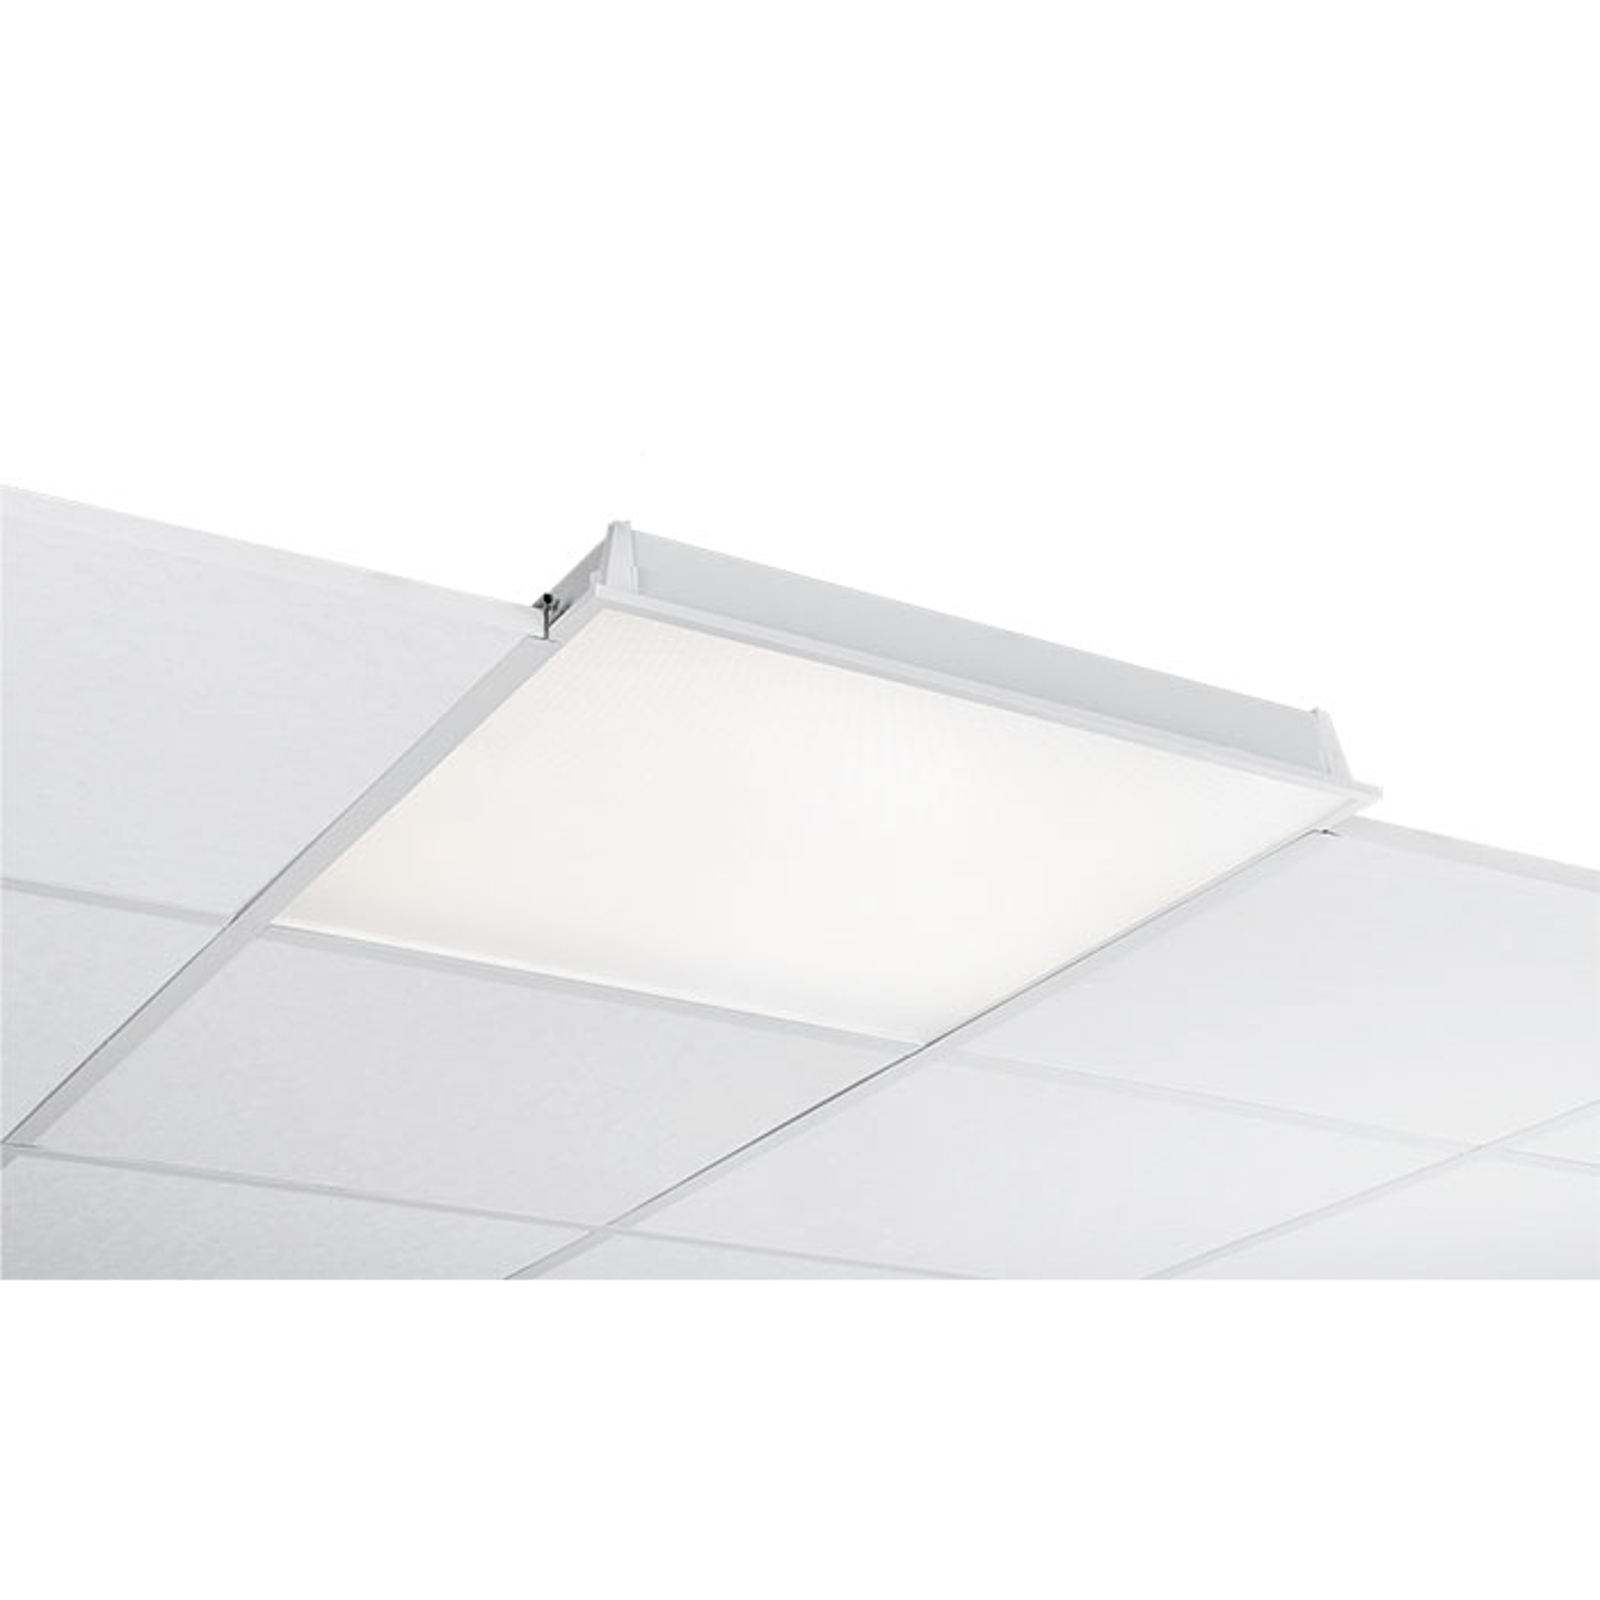 LED-Deckeneinbaupanel C90-R625X625 MP 3.000 K